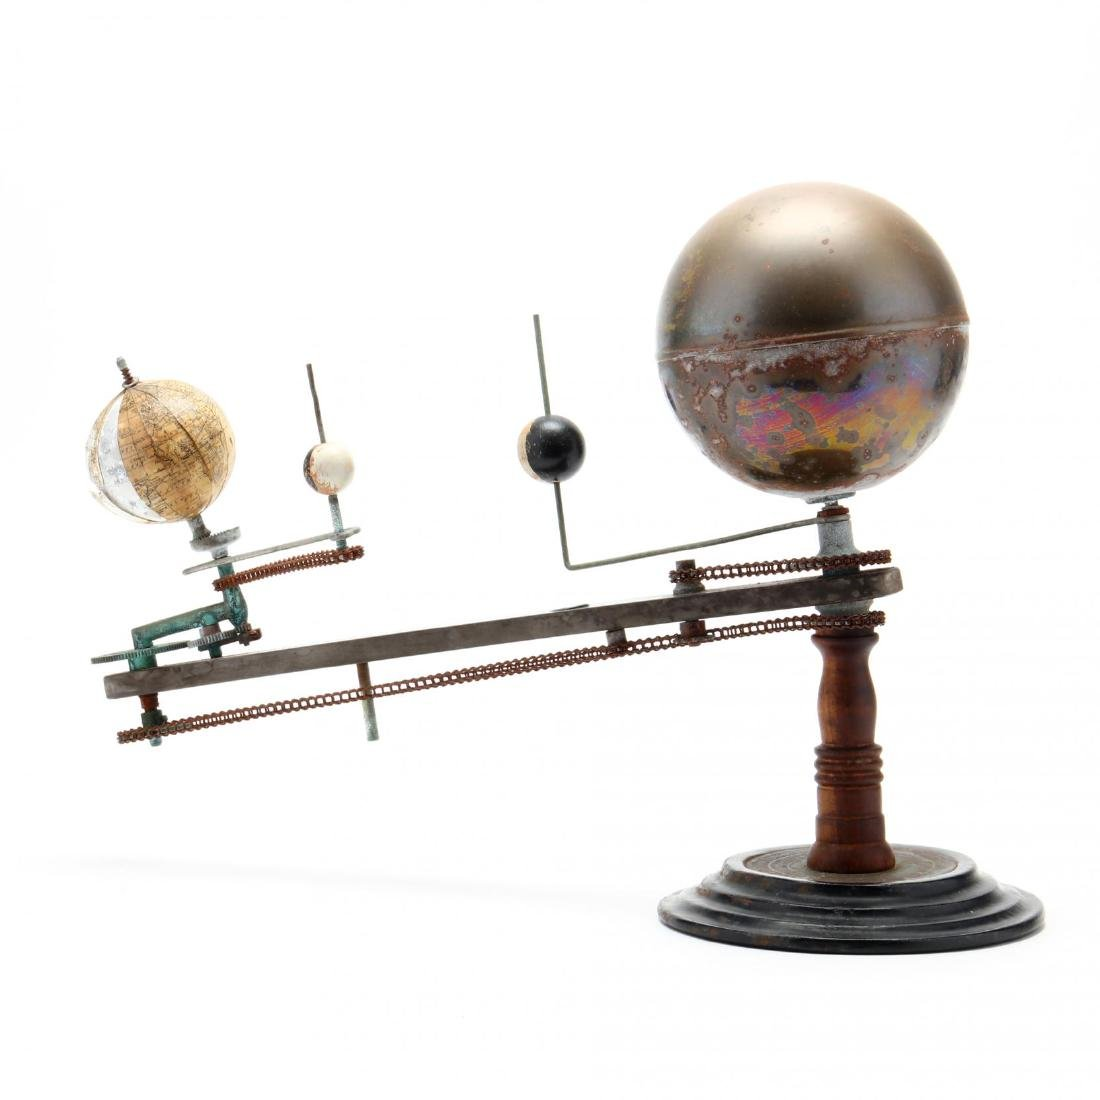 Unmarked Trippensee Planetarium Orrery